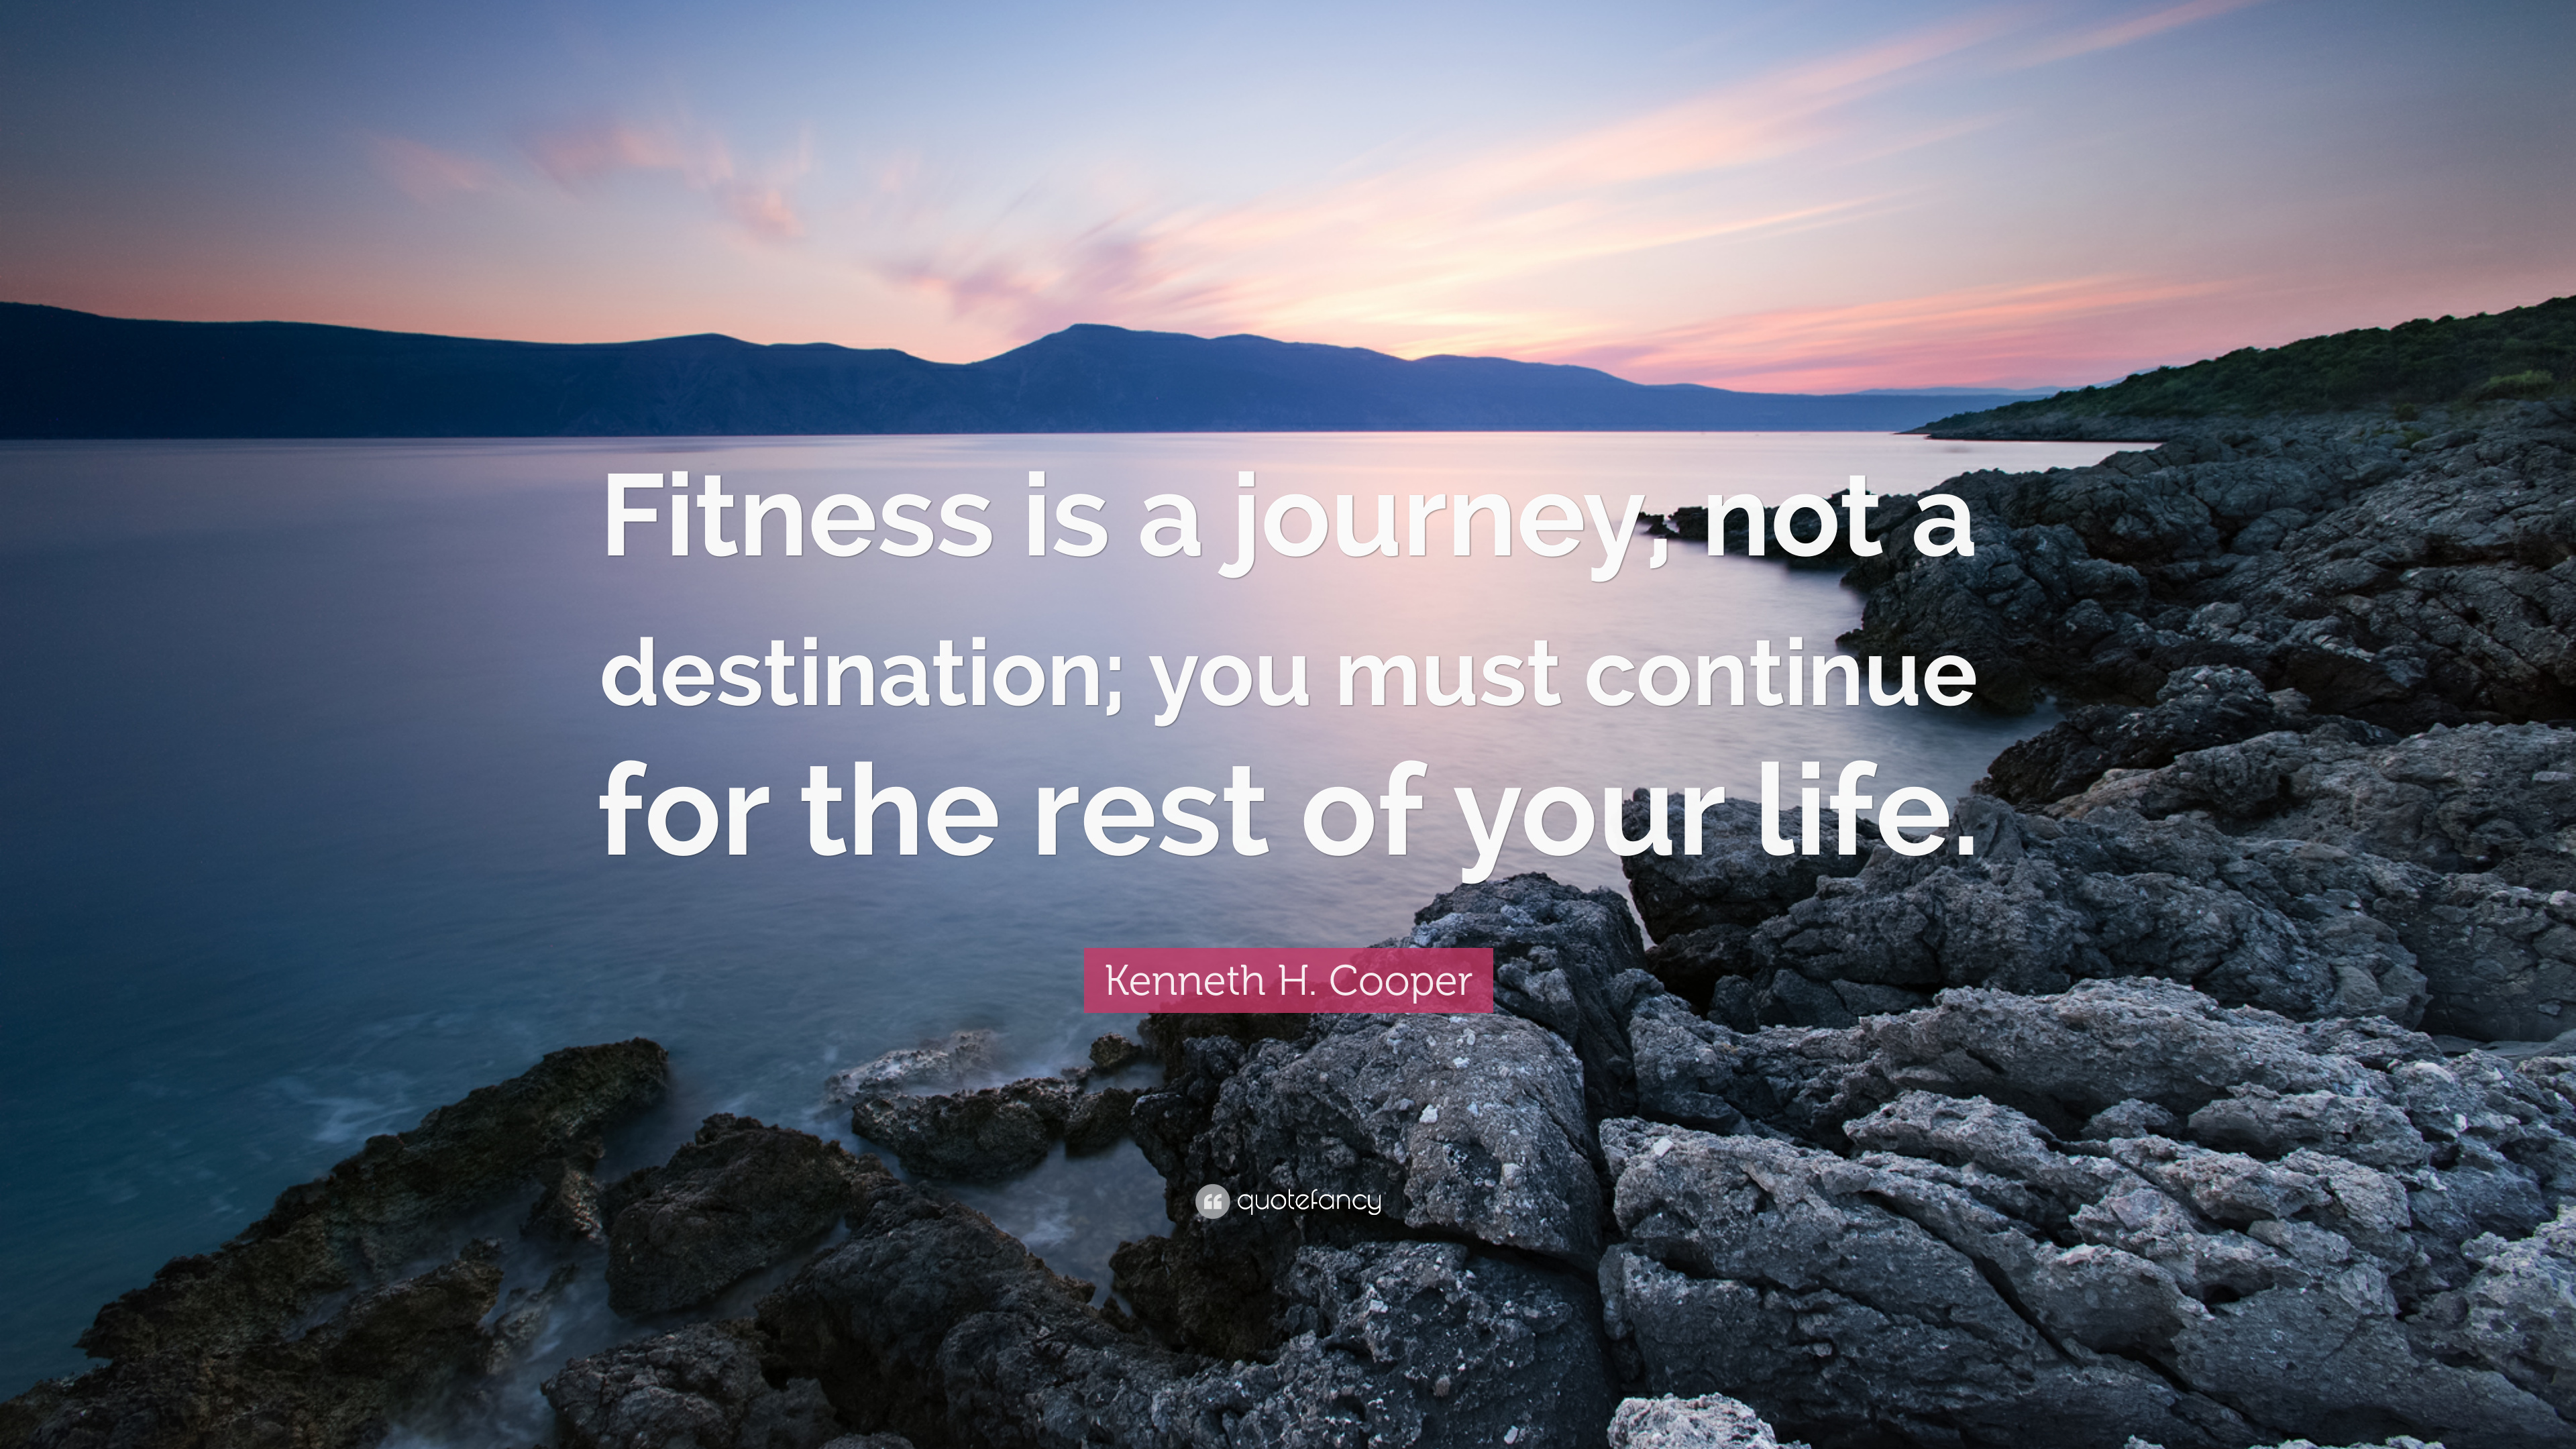 Kenneth H Cooper Quote Fitness Is A Journey Not A Destination You Must Continue For The Rest Of Your Life 7 Wallpapers Quotefancy